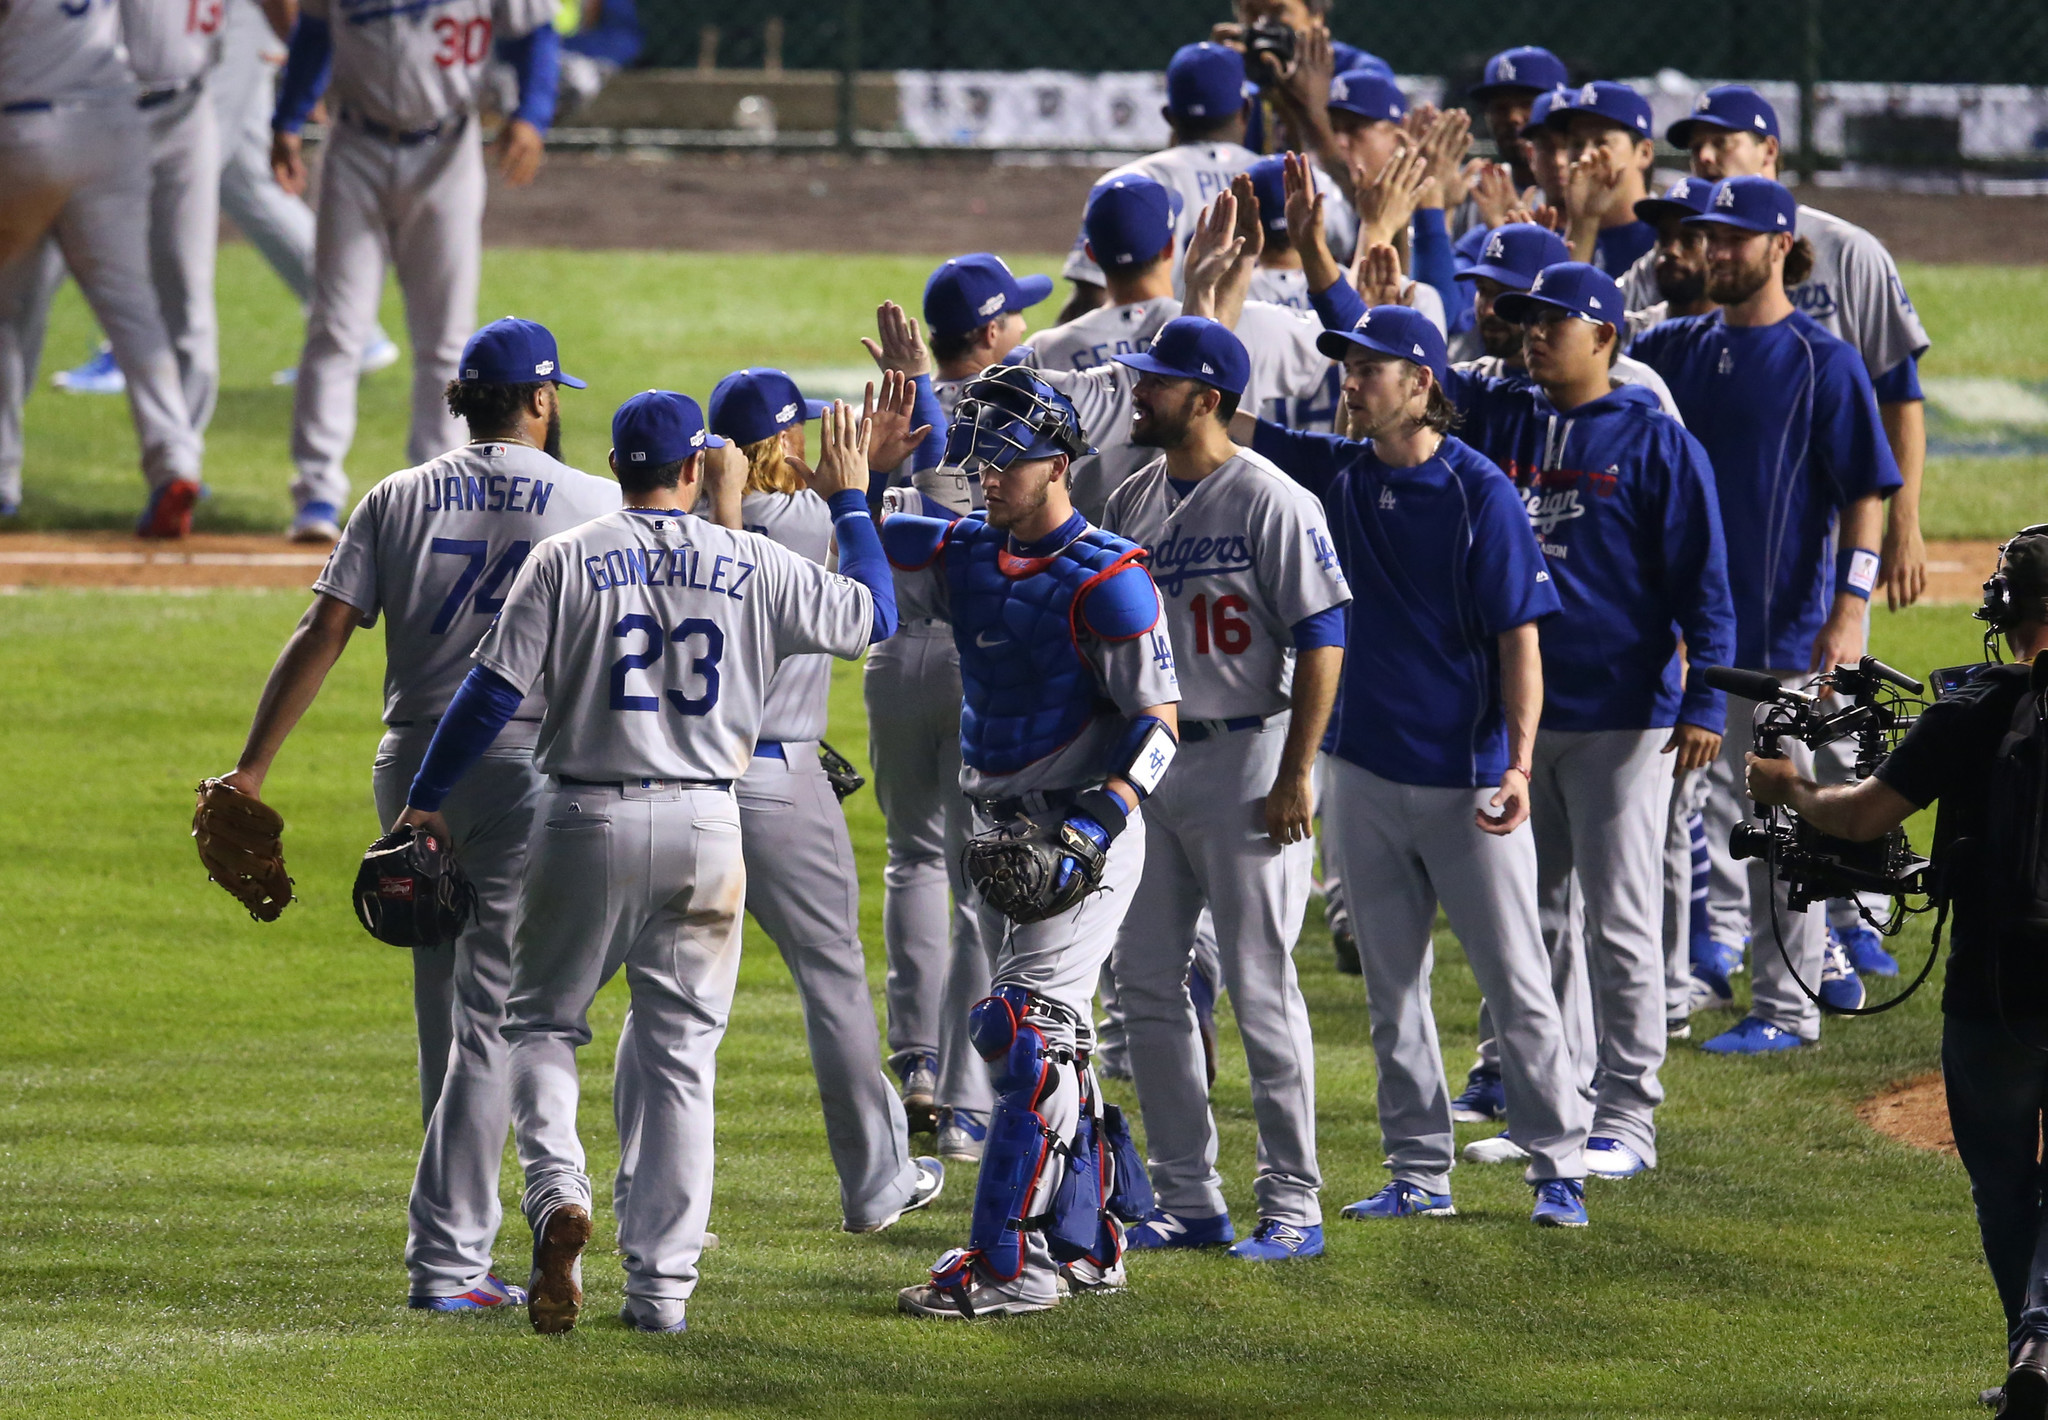 Ct-cubs-dodgers-make-history-in-game-2-20161016